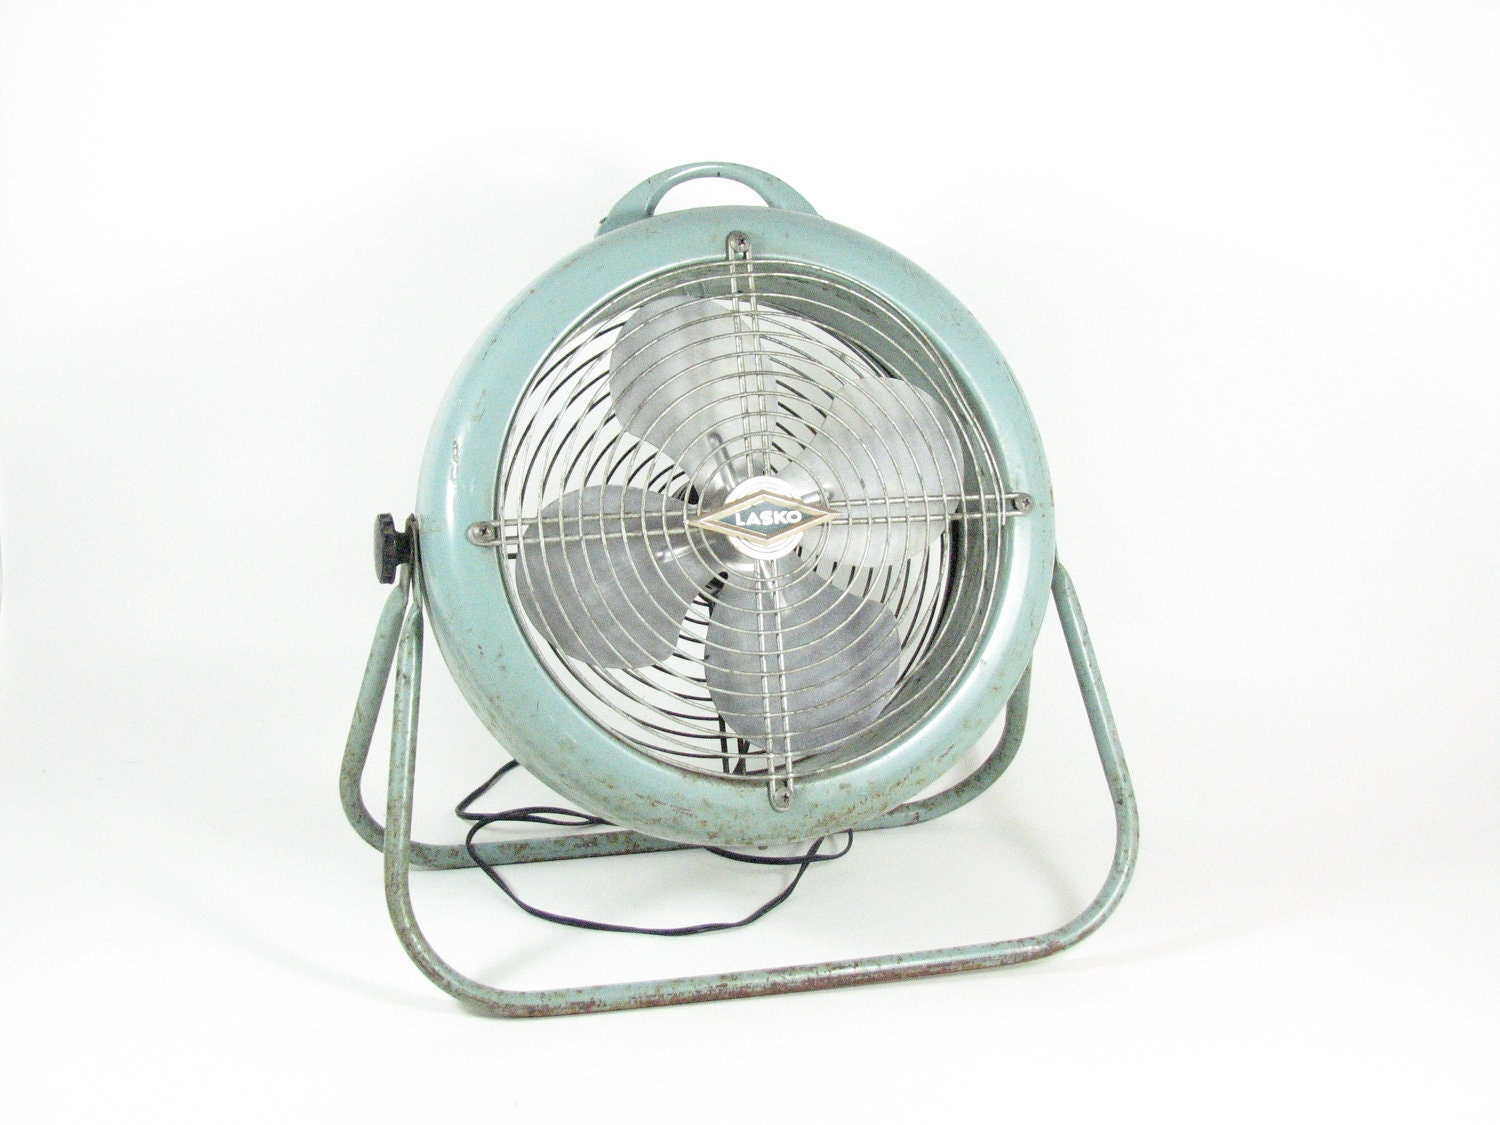 Vintage Metal Floor Fan Lasko 1250 Retro 50s Teal Turquoise